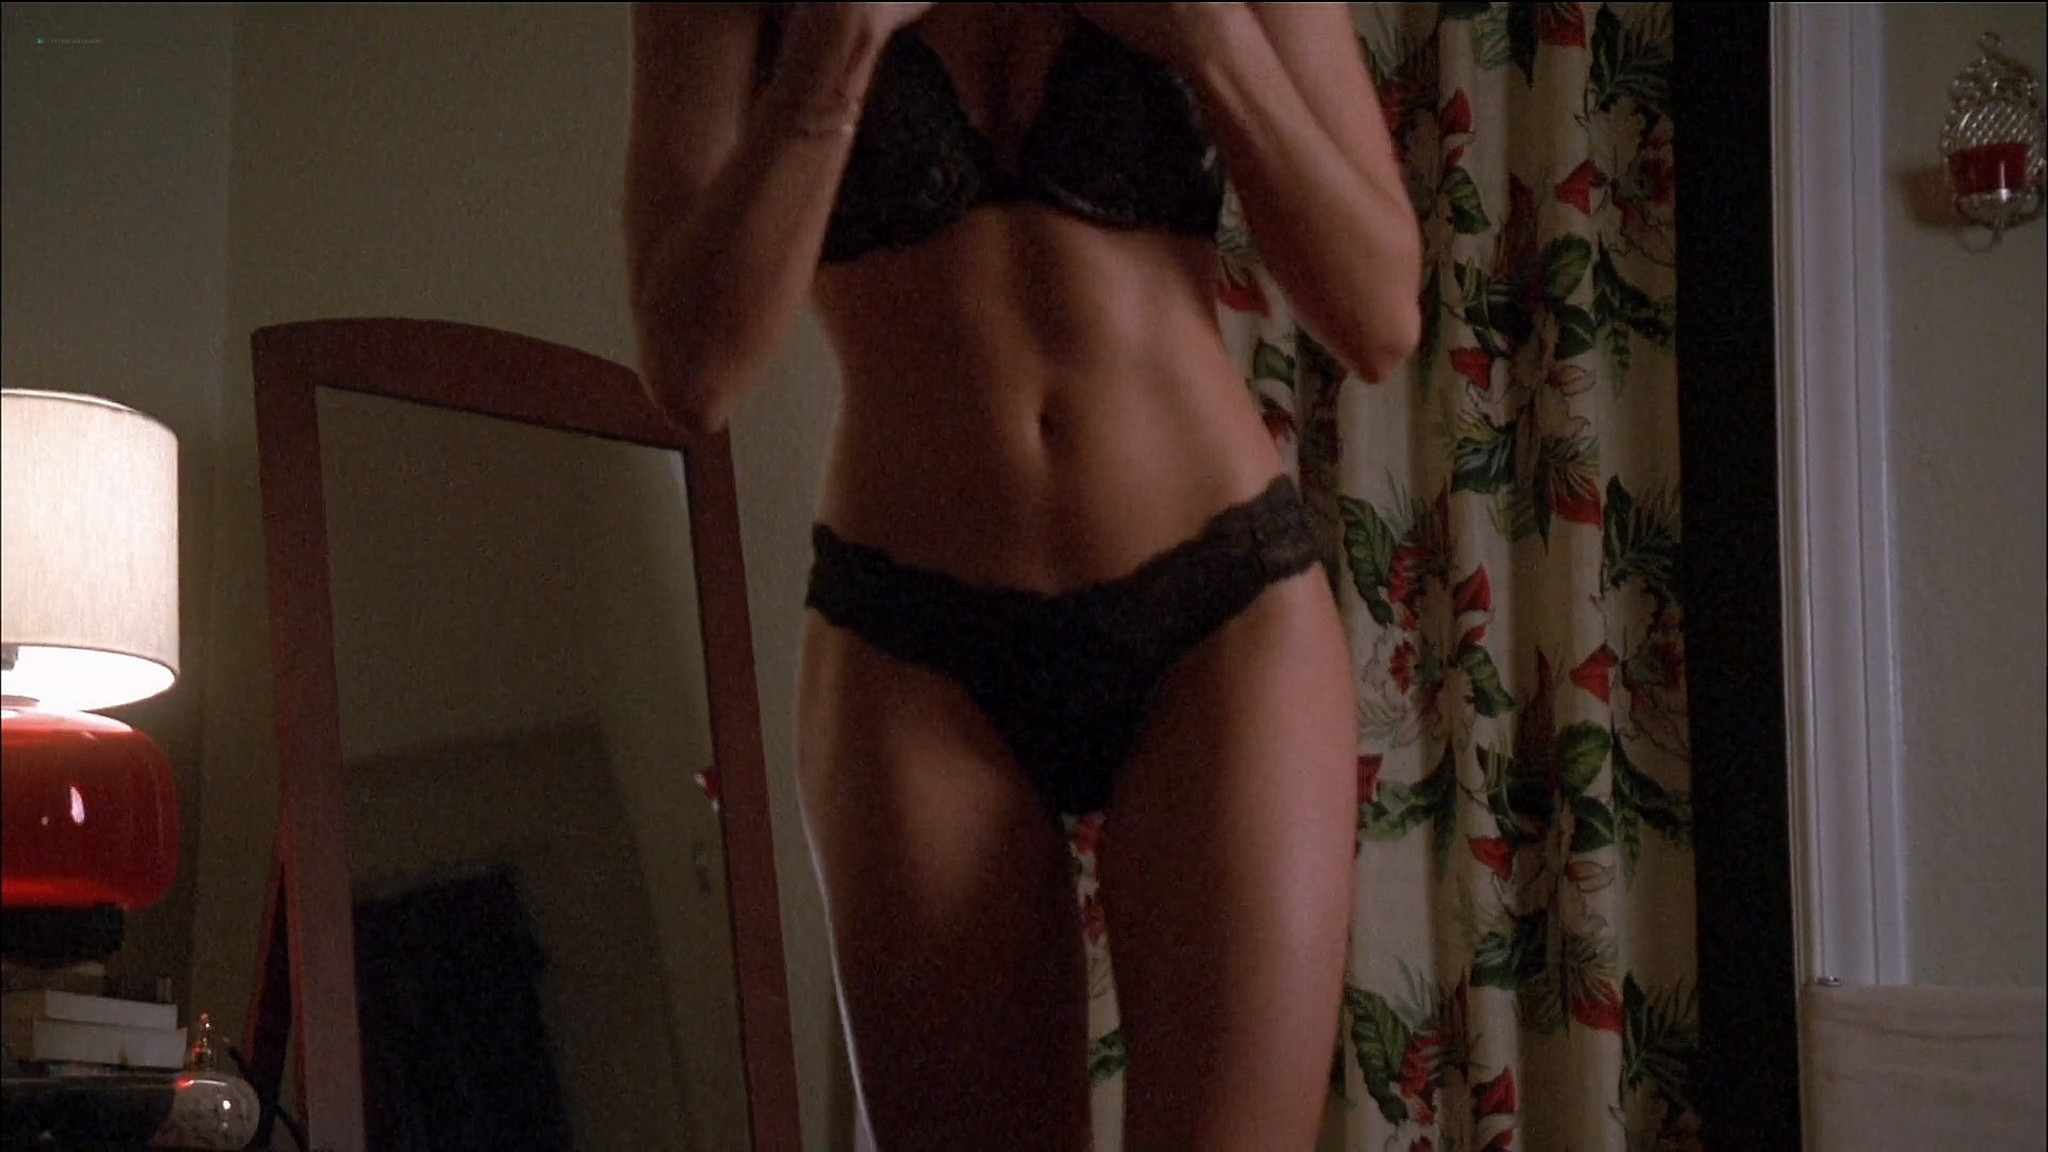 Kristen Miller hot and sex Allison Lange Brooke Burns sexy and some sex too Single White Female 2 2005 1080p Web 3